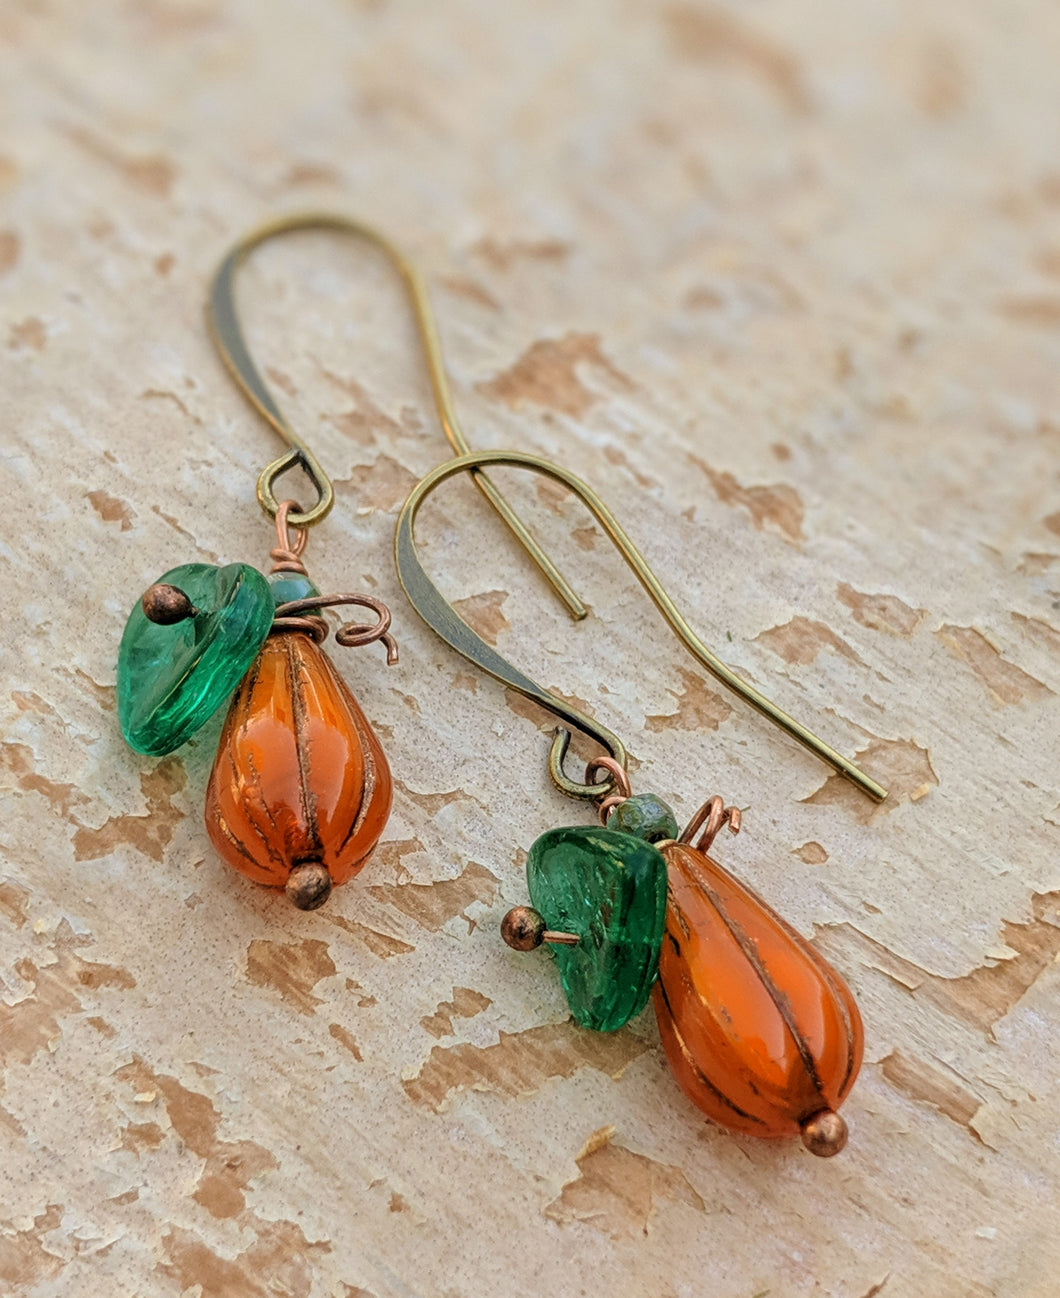 Mini gourd pumpkin earrings - I - Minxes' Trinkets